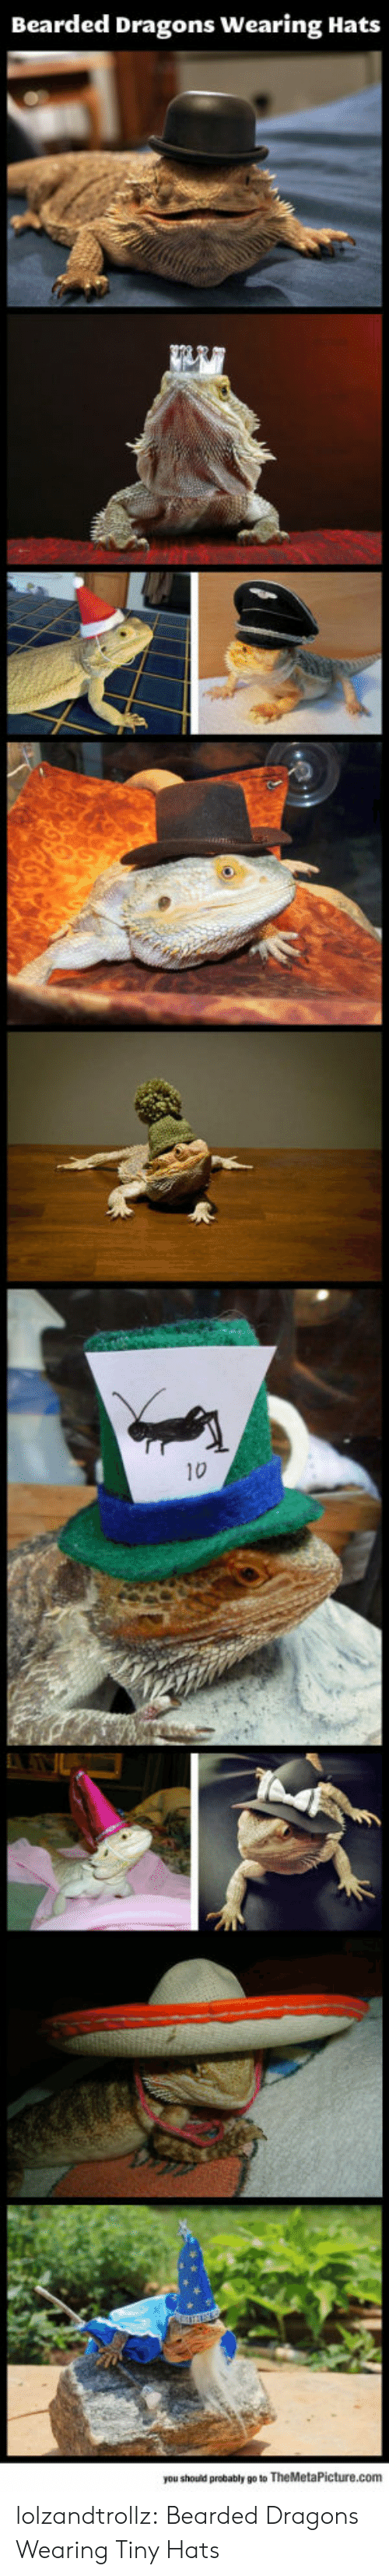 Tumblr, Blog, and Dragons: Bearded Dragons Wearing Hats  10  you should probably go to TheMetaPicture.com lolzandtrollz:  Bearded Dragons Wearing Tiny Hats